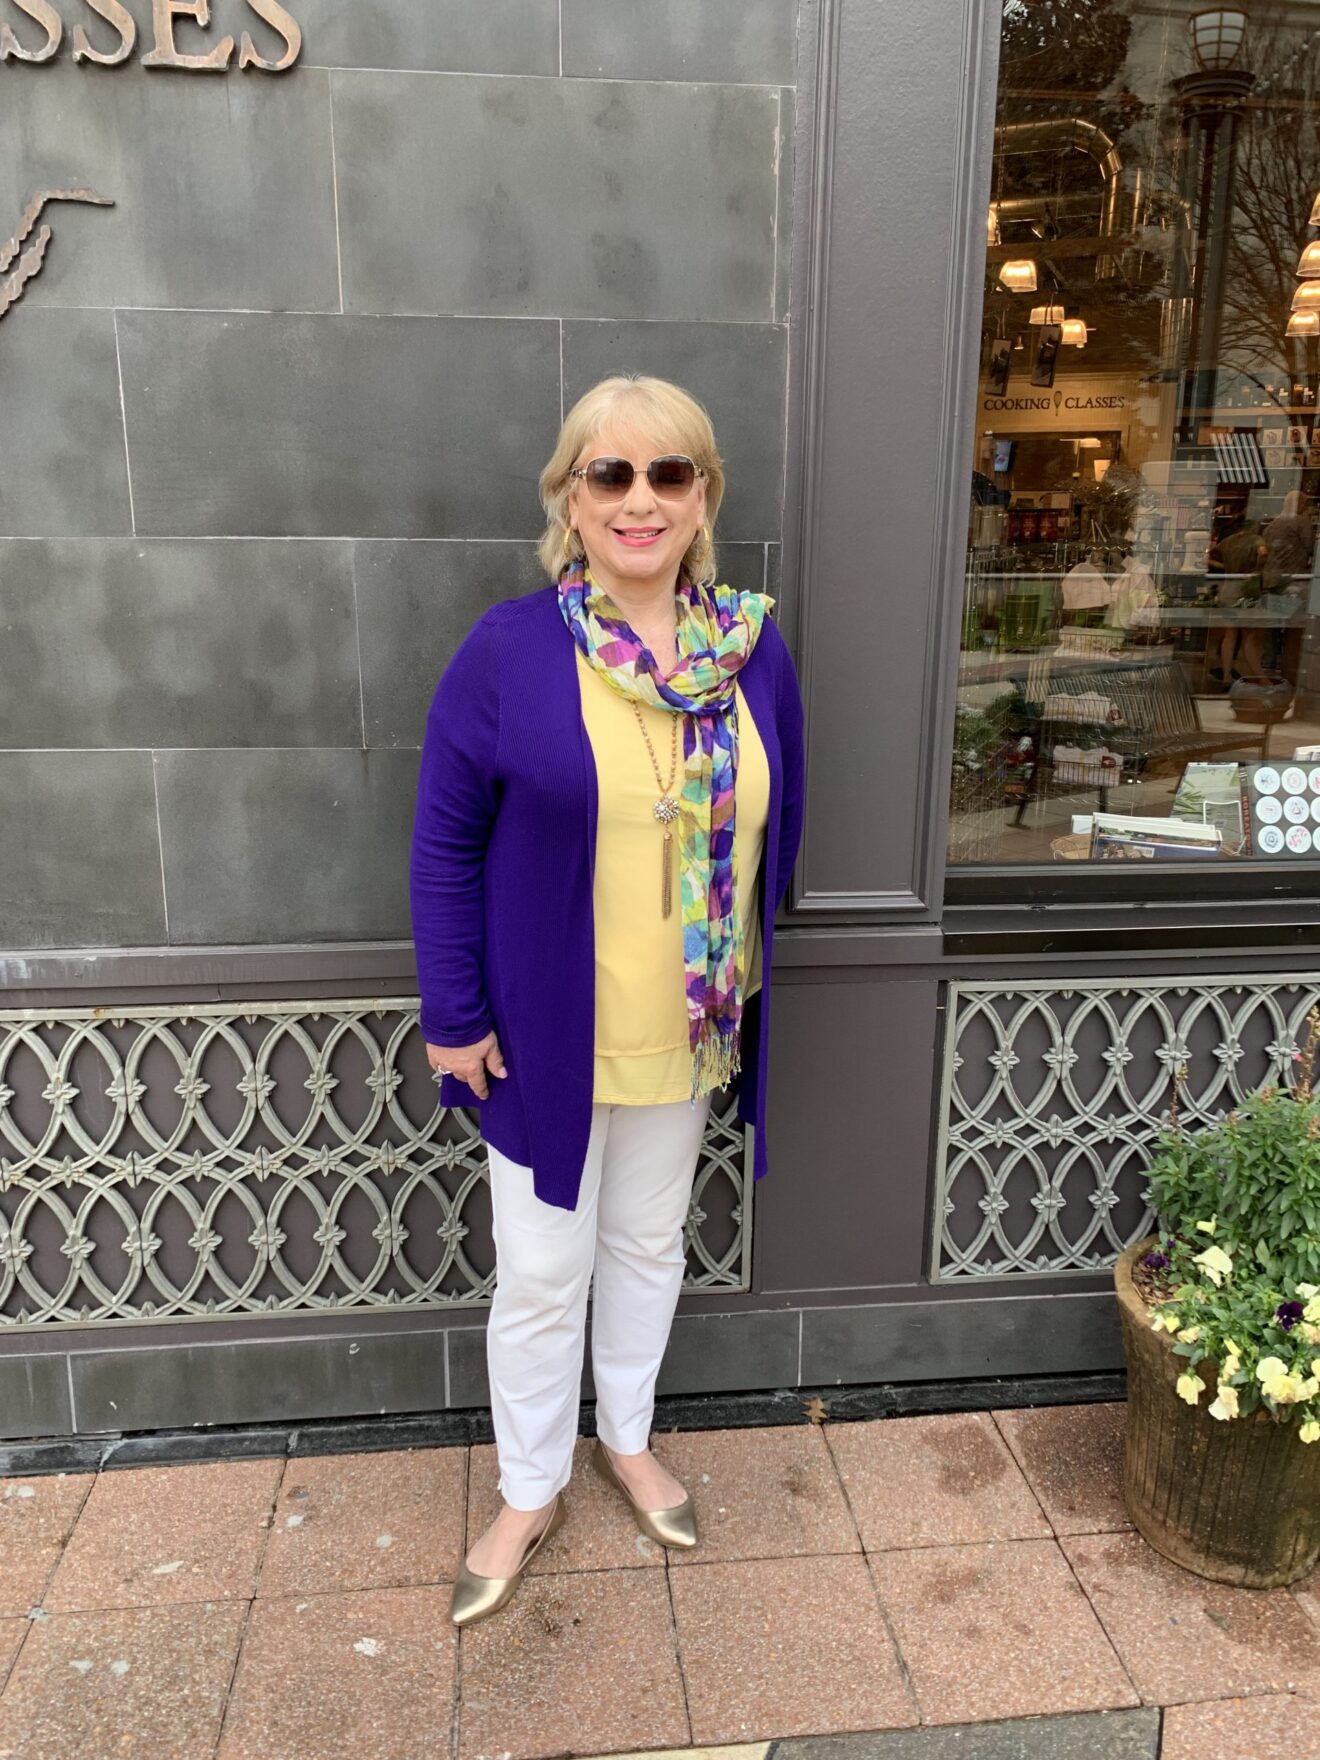 Style Story Interview Classy Colorful Confidence @StyleShennanigans Shannon Holmes Fashion Over 50 60 Confident Playful Yellow Purple Outfit Story Behind The Cloth scaled